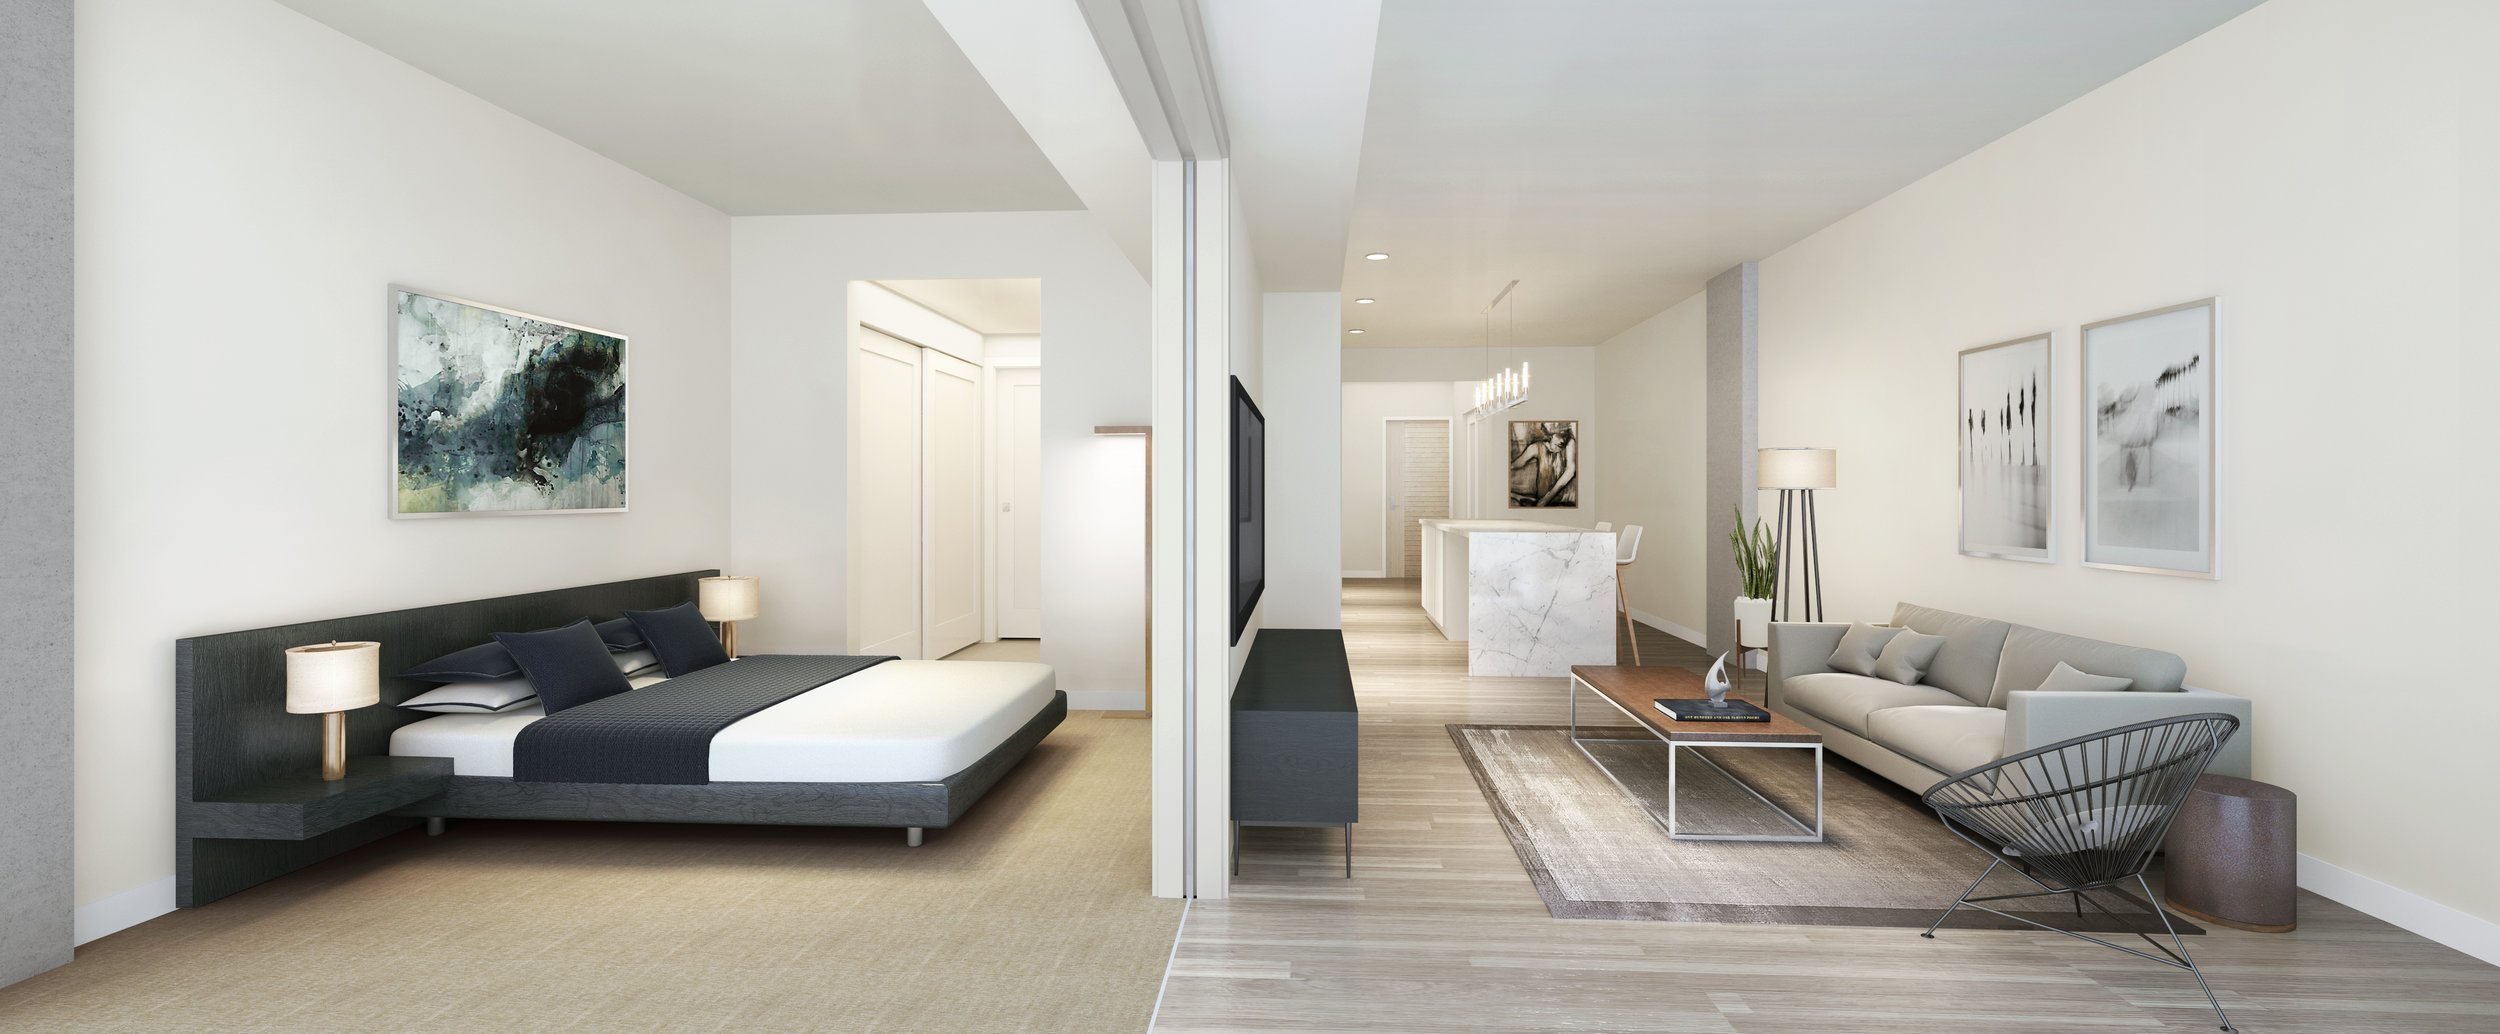 PICTURED ABOVE & BELOW: Renderings reveal design inspiration for the efficiently-scaled condominiums offering homeownership from below $400,000 to more than $1.4 million.